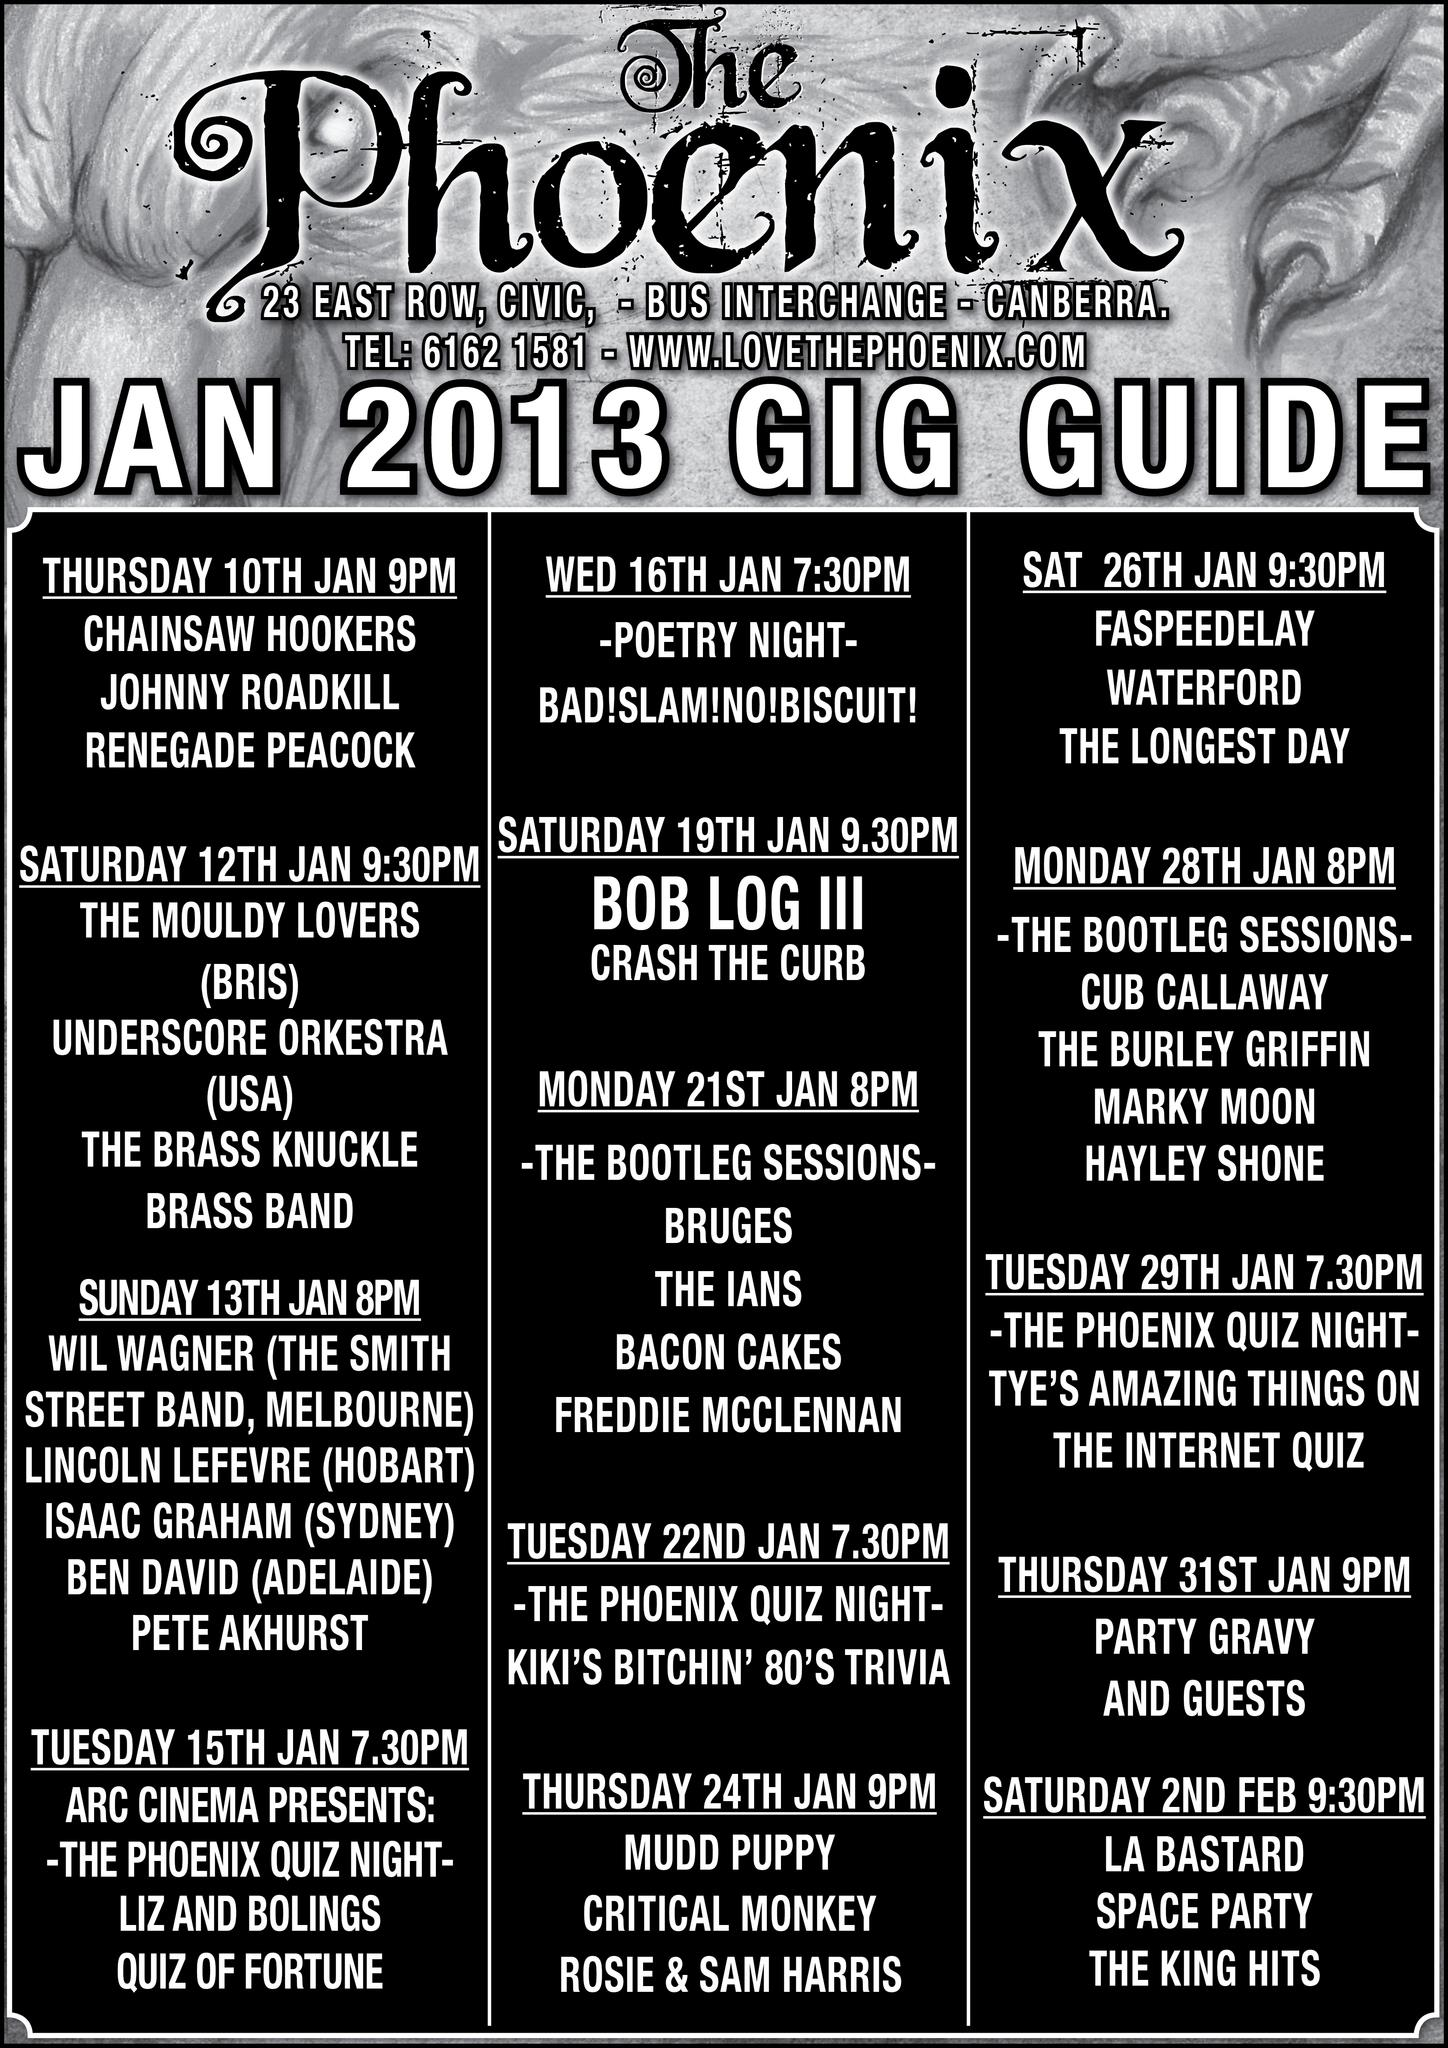 jan2013gigguide.jpg